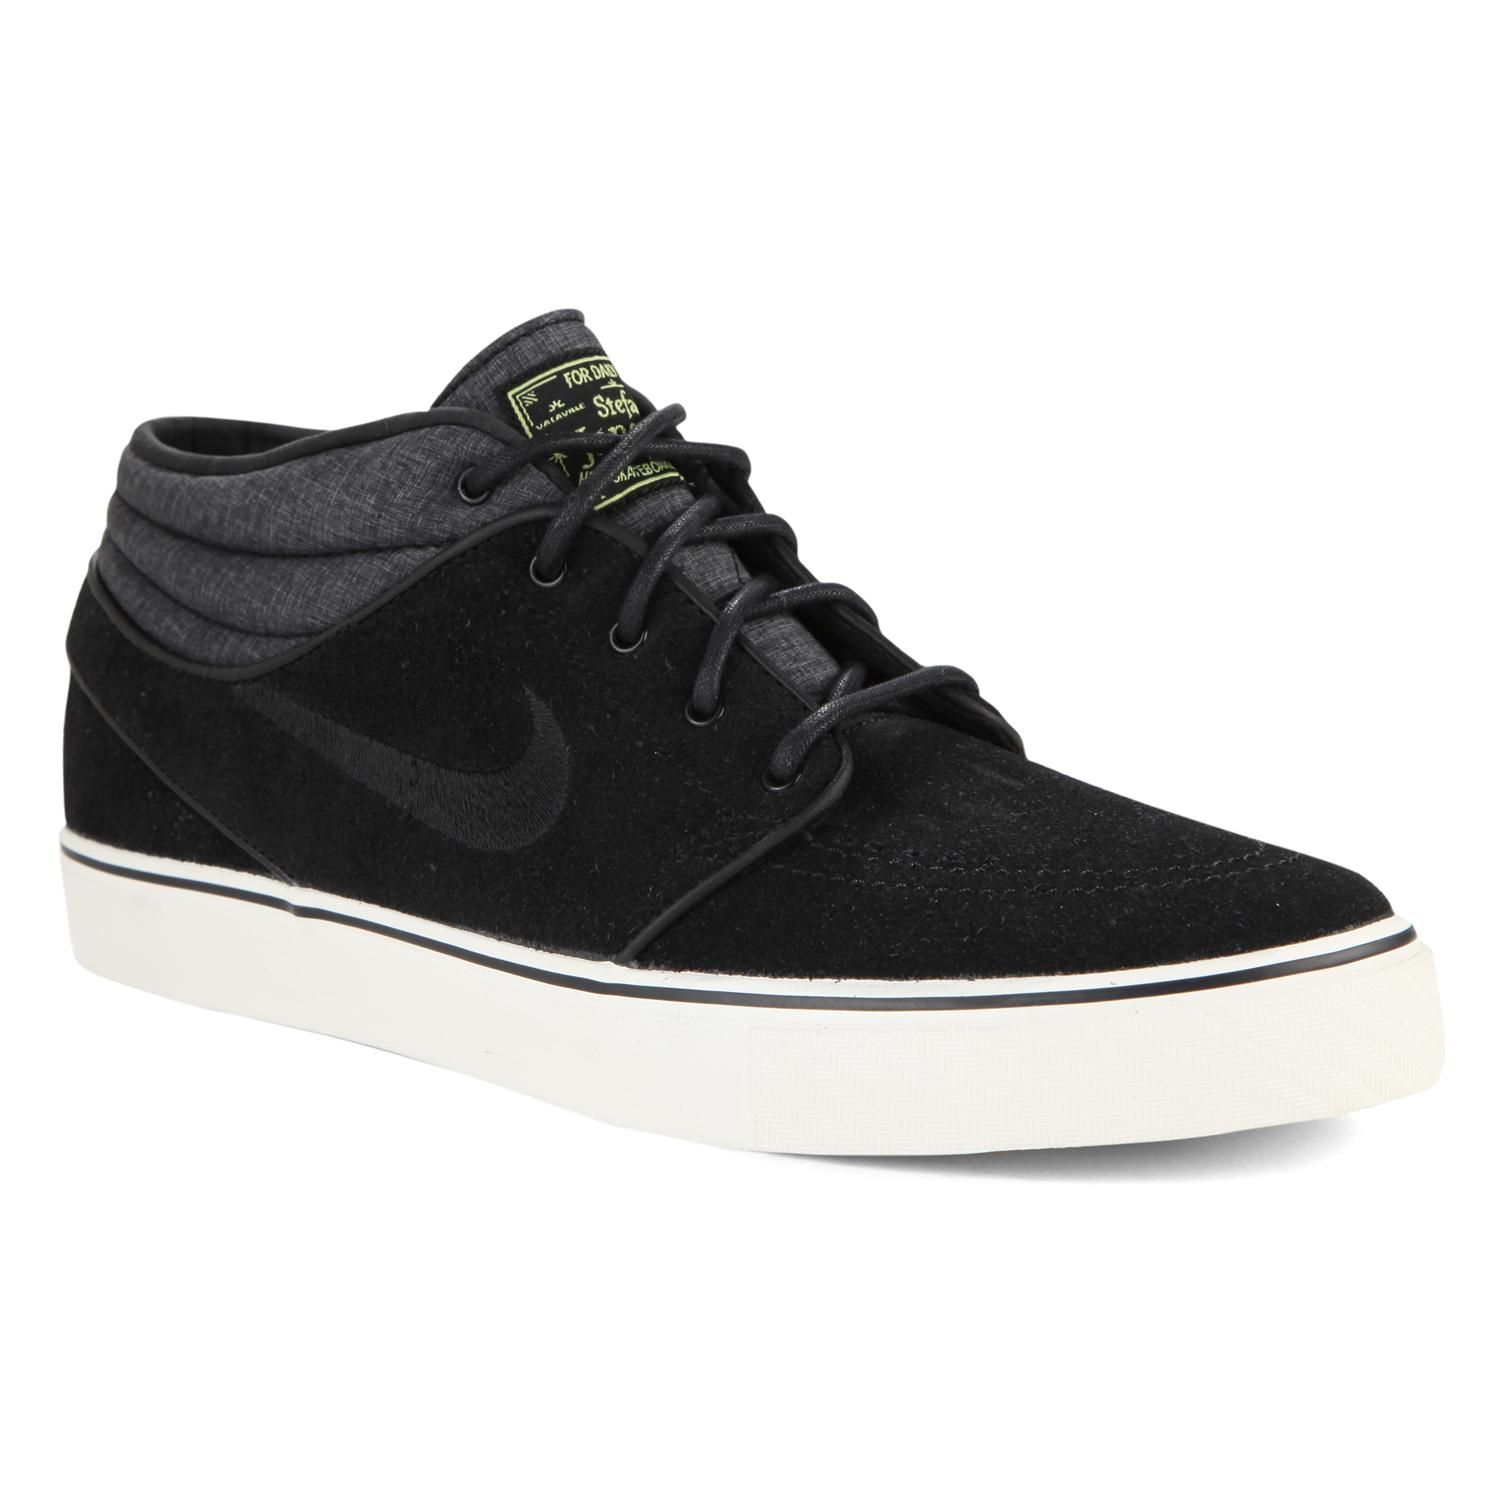 nike zoom stefan janoski mid shoes evo outlet. Black Bedroom Furniture Sets. Home Design Ideas